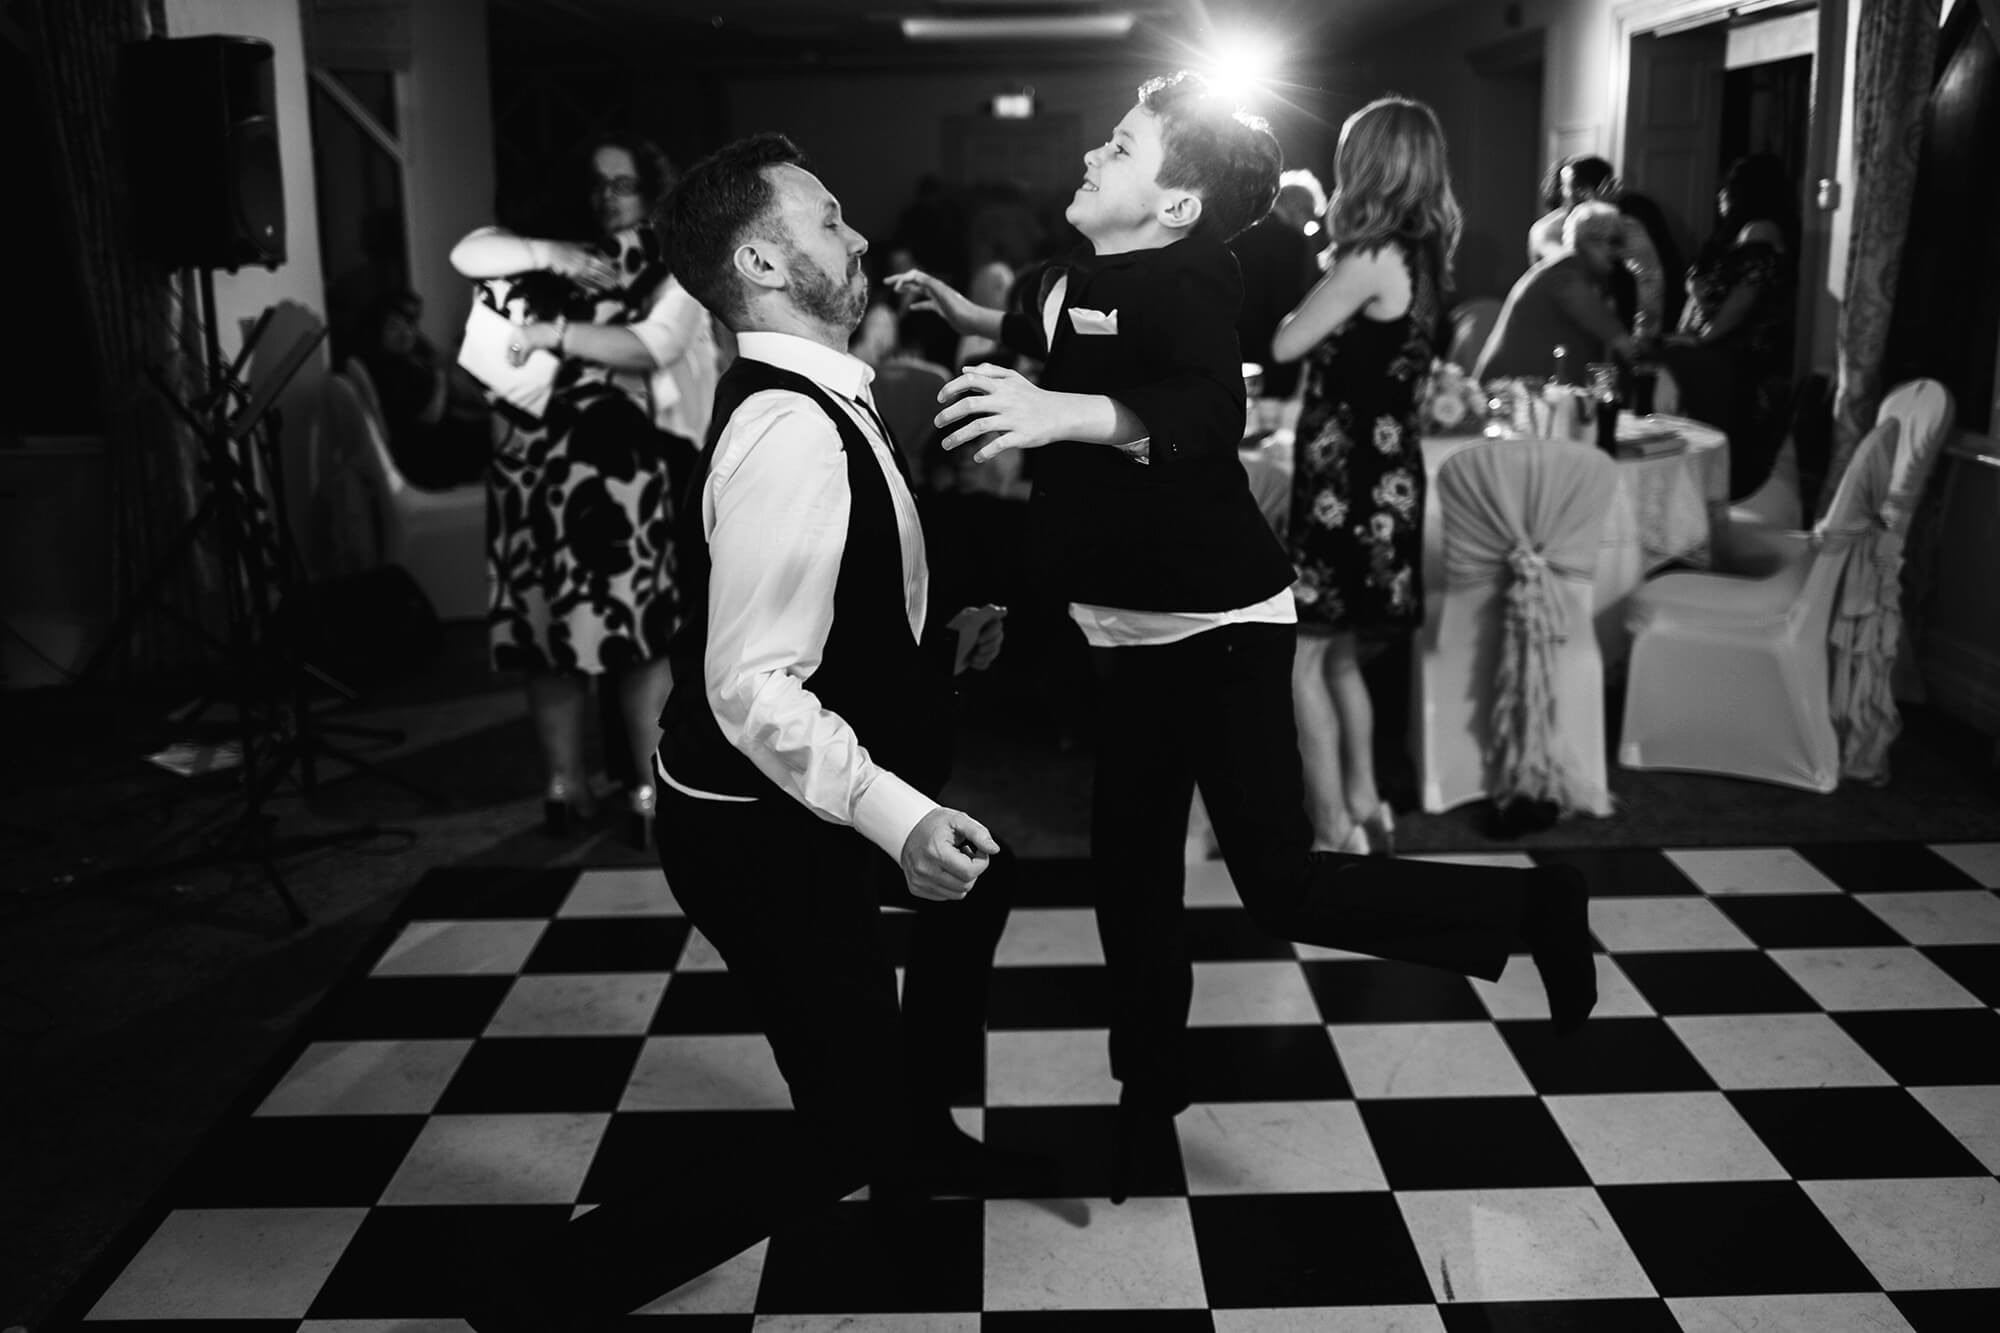 Dale and Son Zane dancing and busting moves at wedding